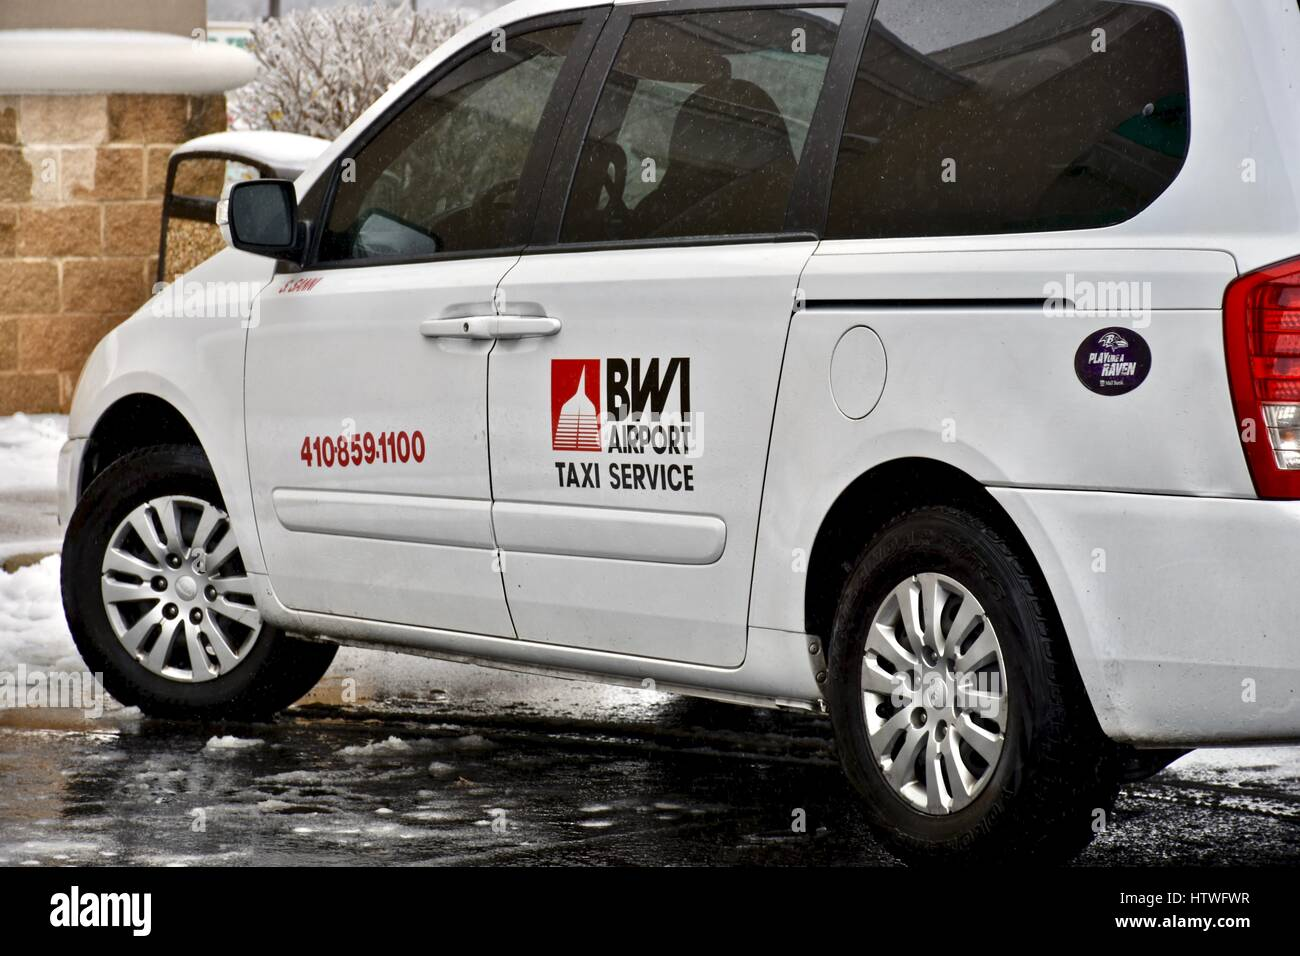 BWI airport taxi service van Stock Photo: 135785603 - Alamy